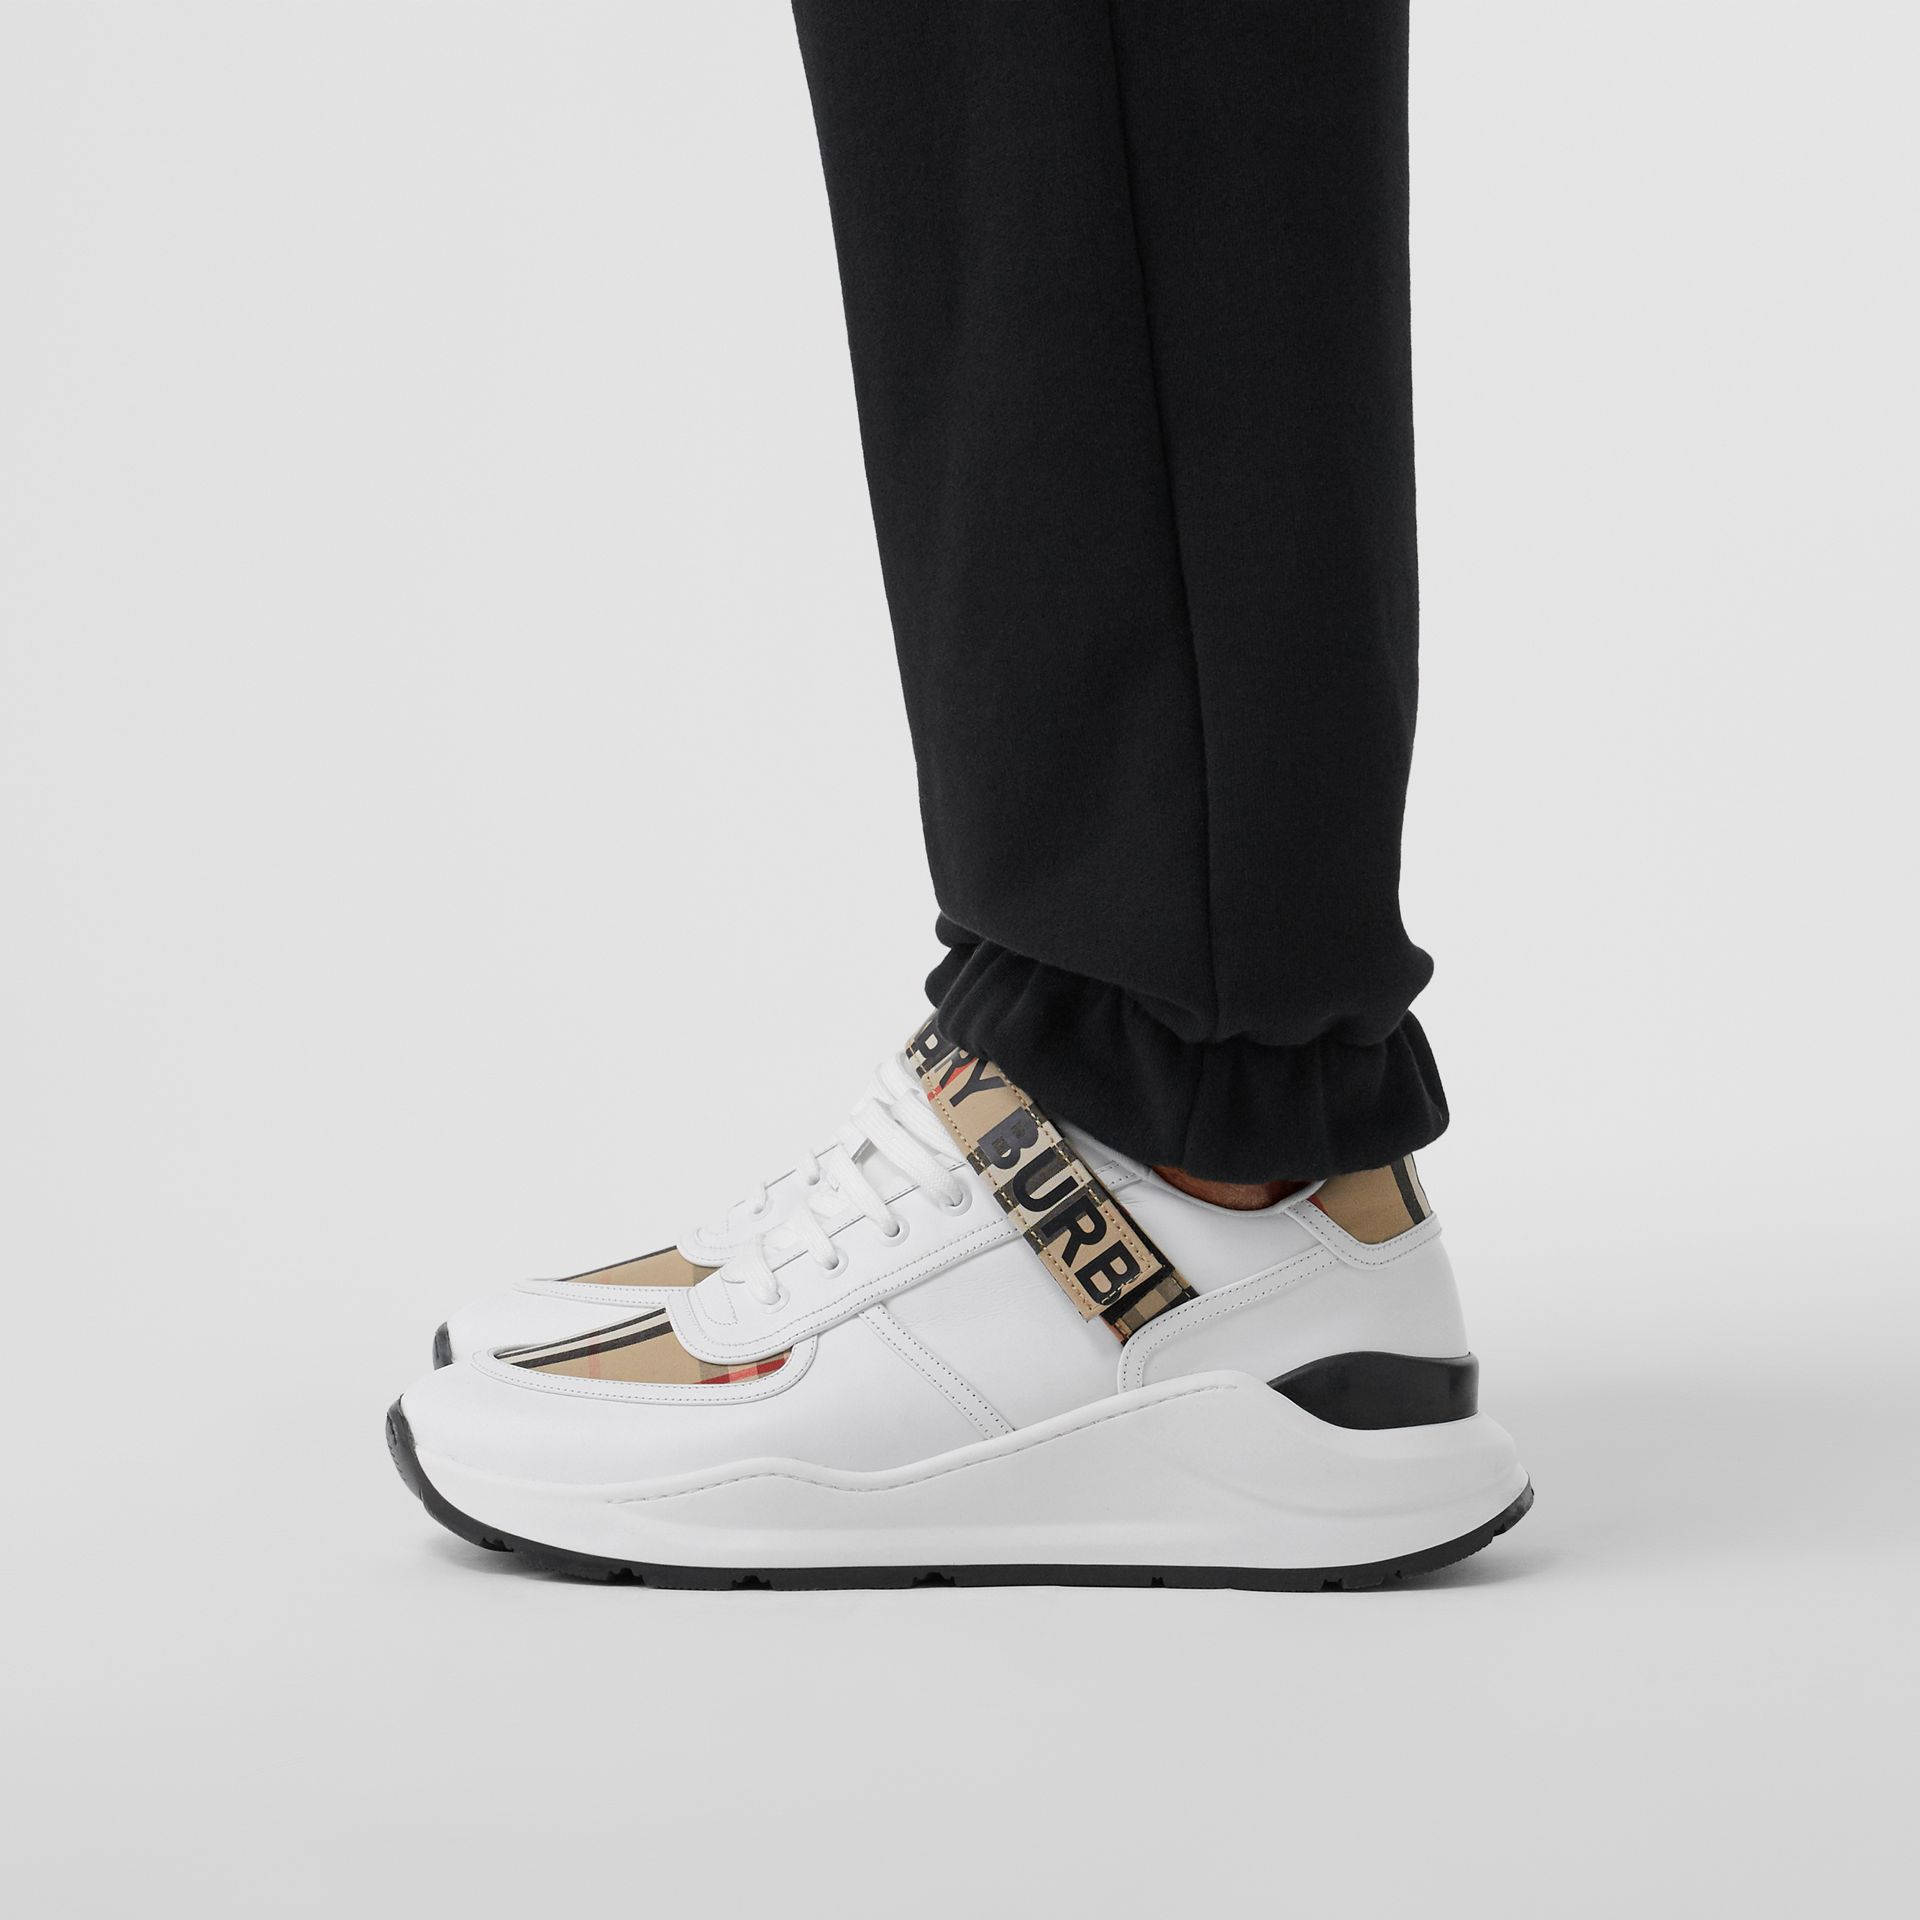 Logo Detail Leather and Vintage Check Sneakers in Archive Beige/white - Men | Burberry United Kingdom - gallery image 2